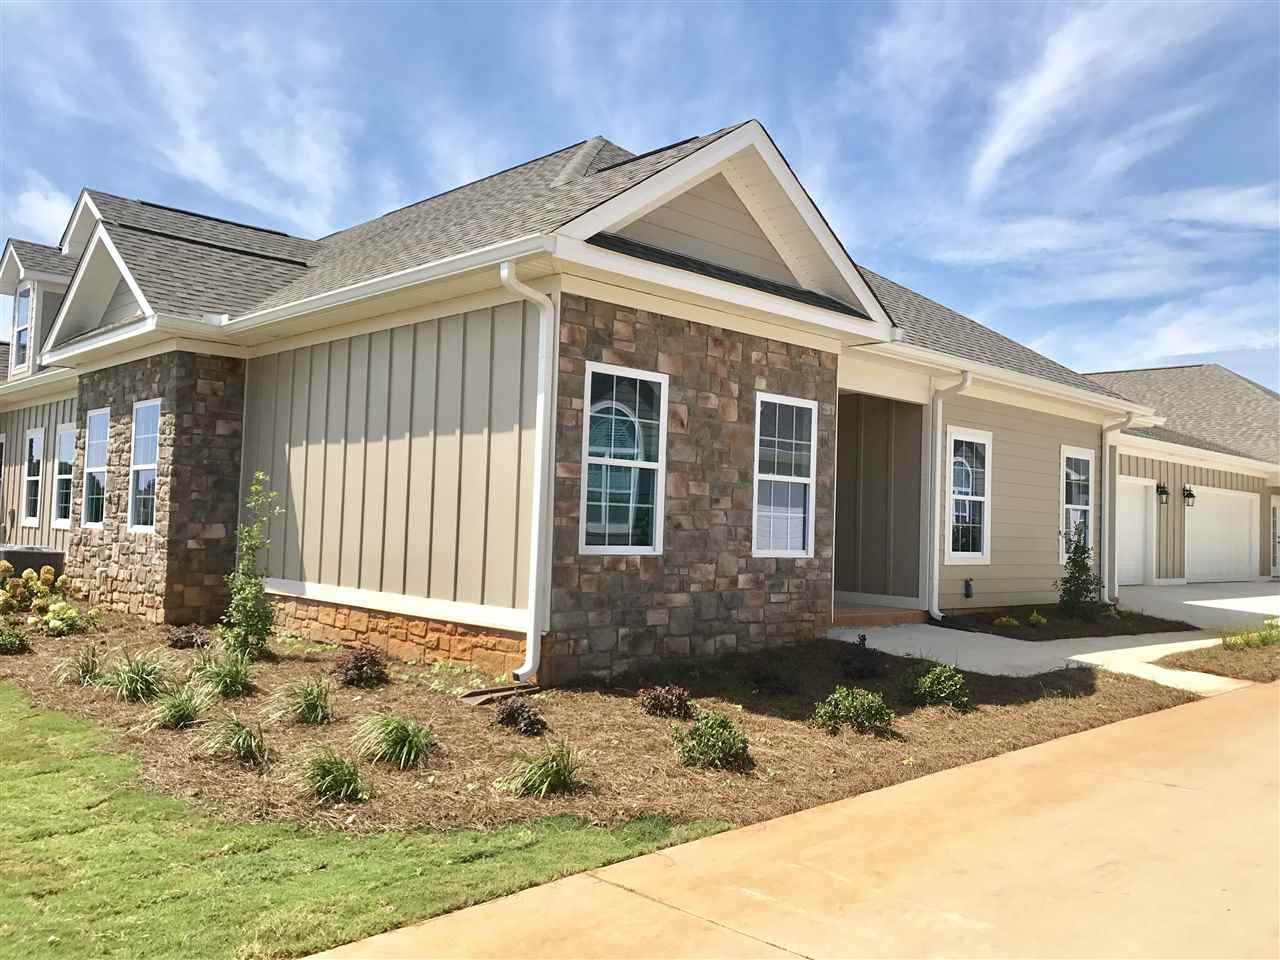 Williamsburg town homes subdivision in warner robins ga 31088 for Home builders in warner robins ga